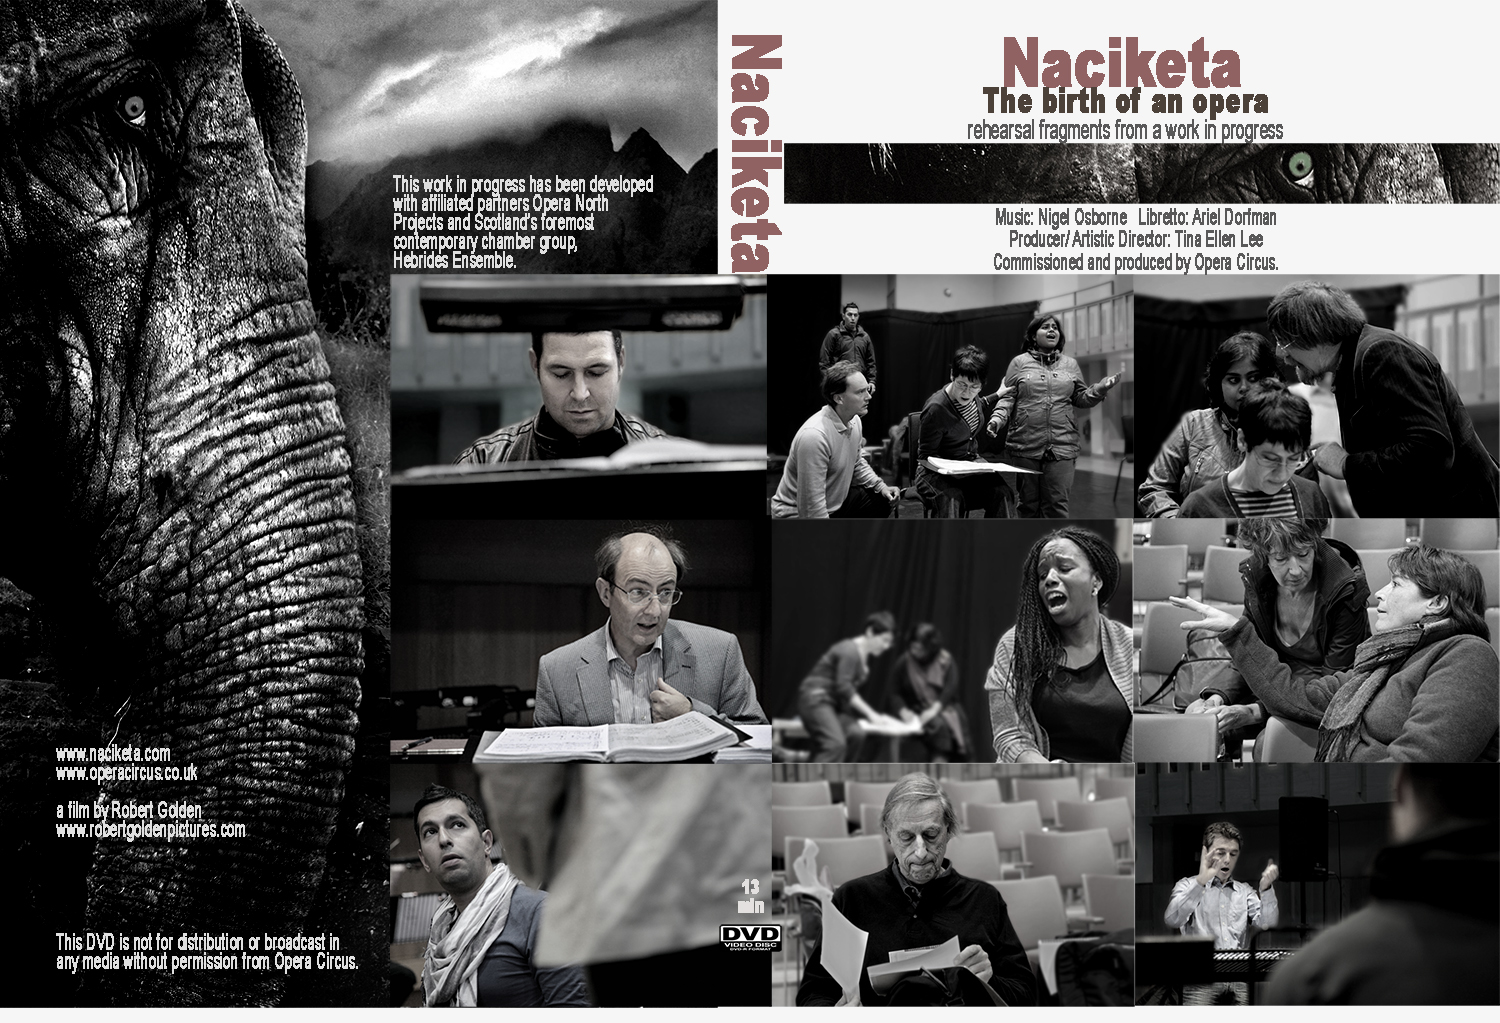 - This is a fragment of a documentary about Naciketa that followed the development of this work-in-progress opera for 2 years from London to Leeds to Edinburgh to London's Royal Opera House and then to India.You can see it here.